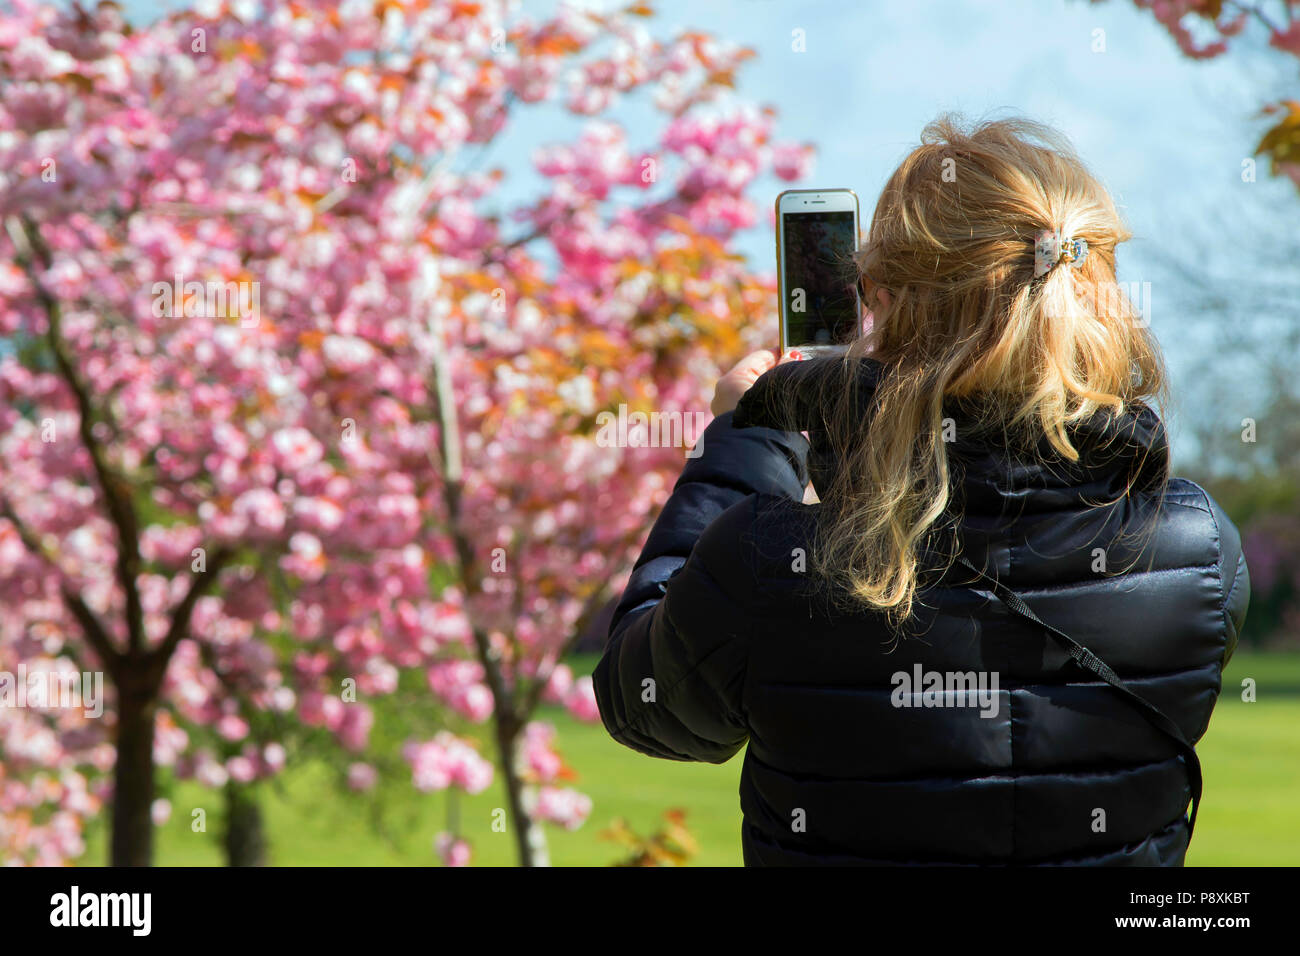 A woman taking a photo of Pink Cherry Blossom with a mobile phone. - Stock Image